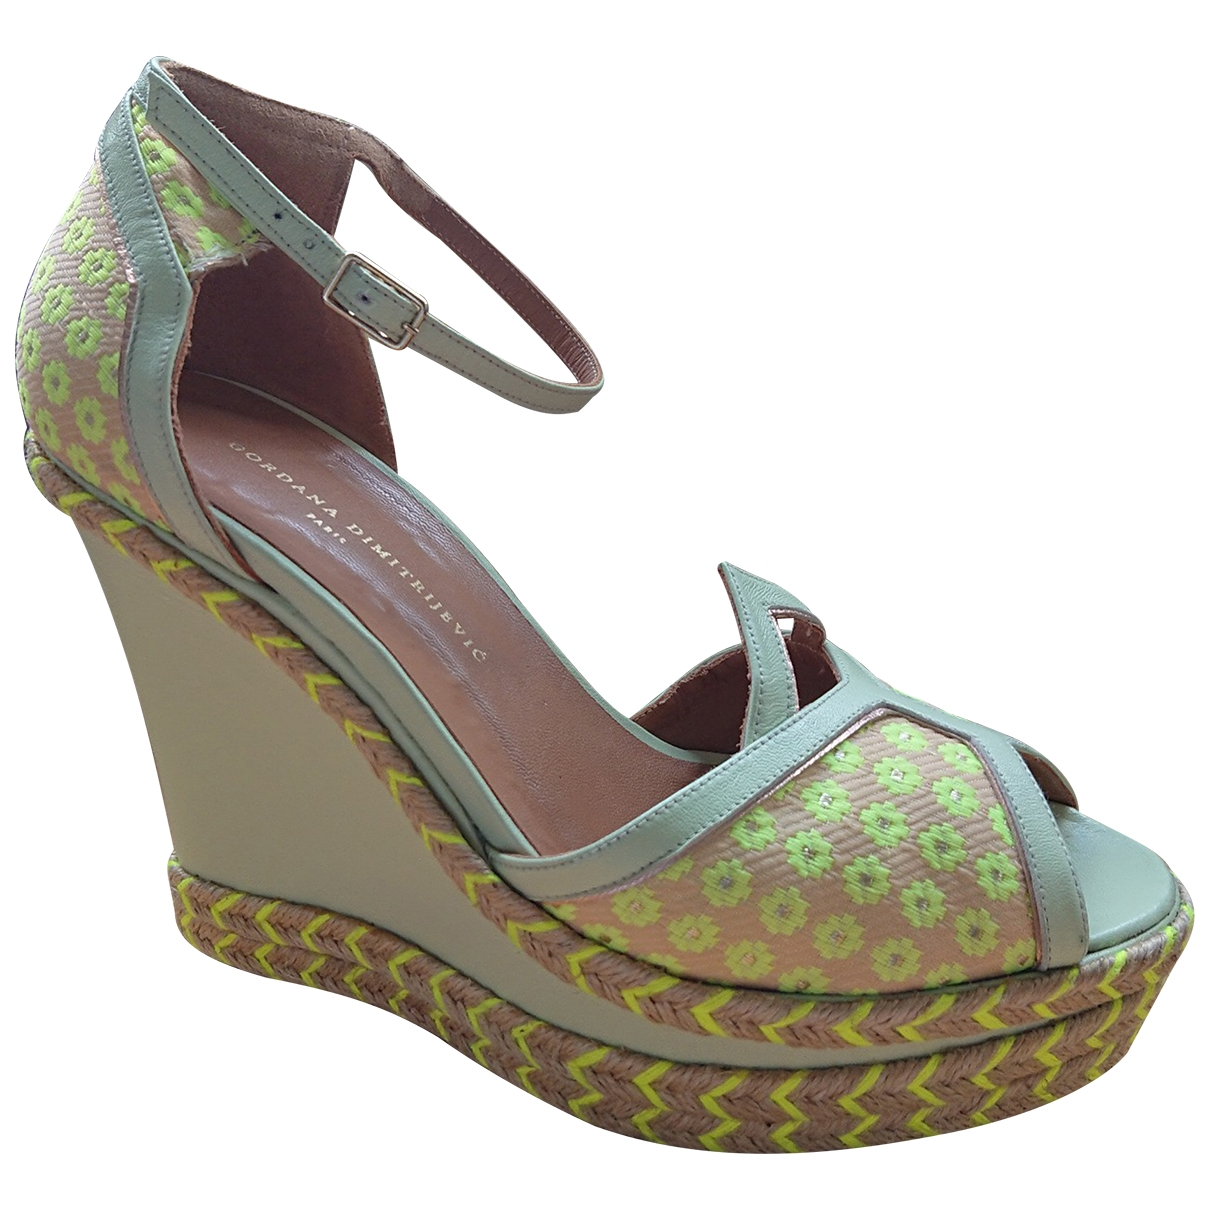 Gordana Dimitrijevic \N Green Leather Sandals for Women 40 EU